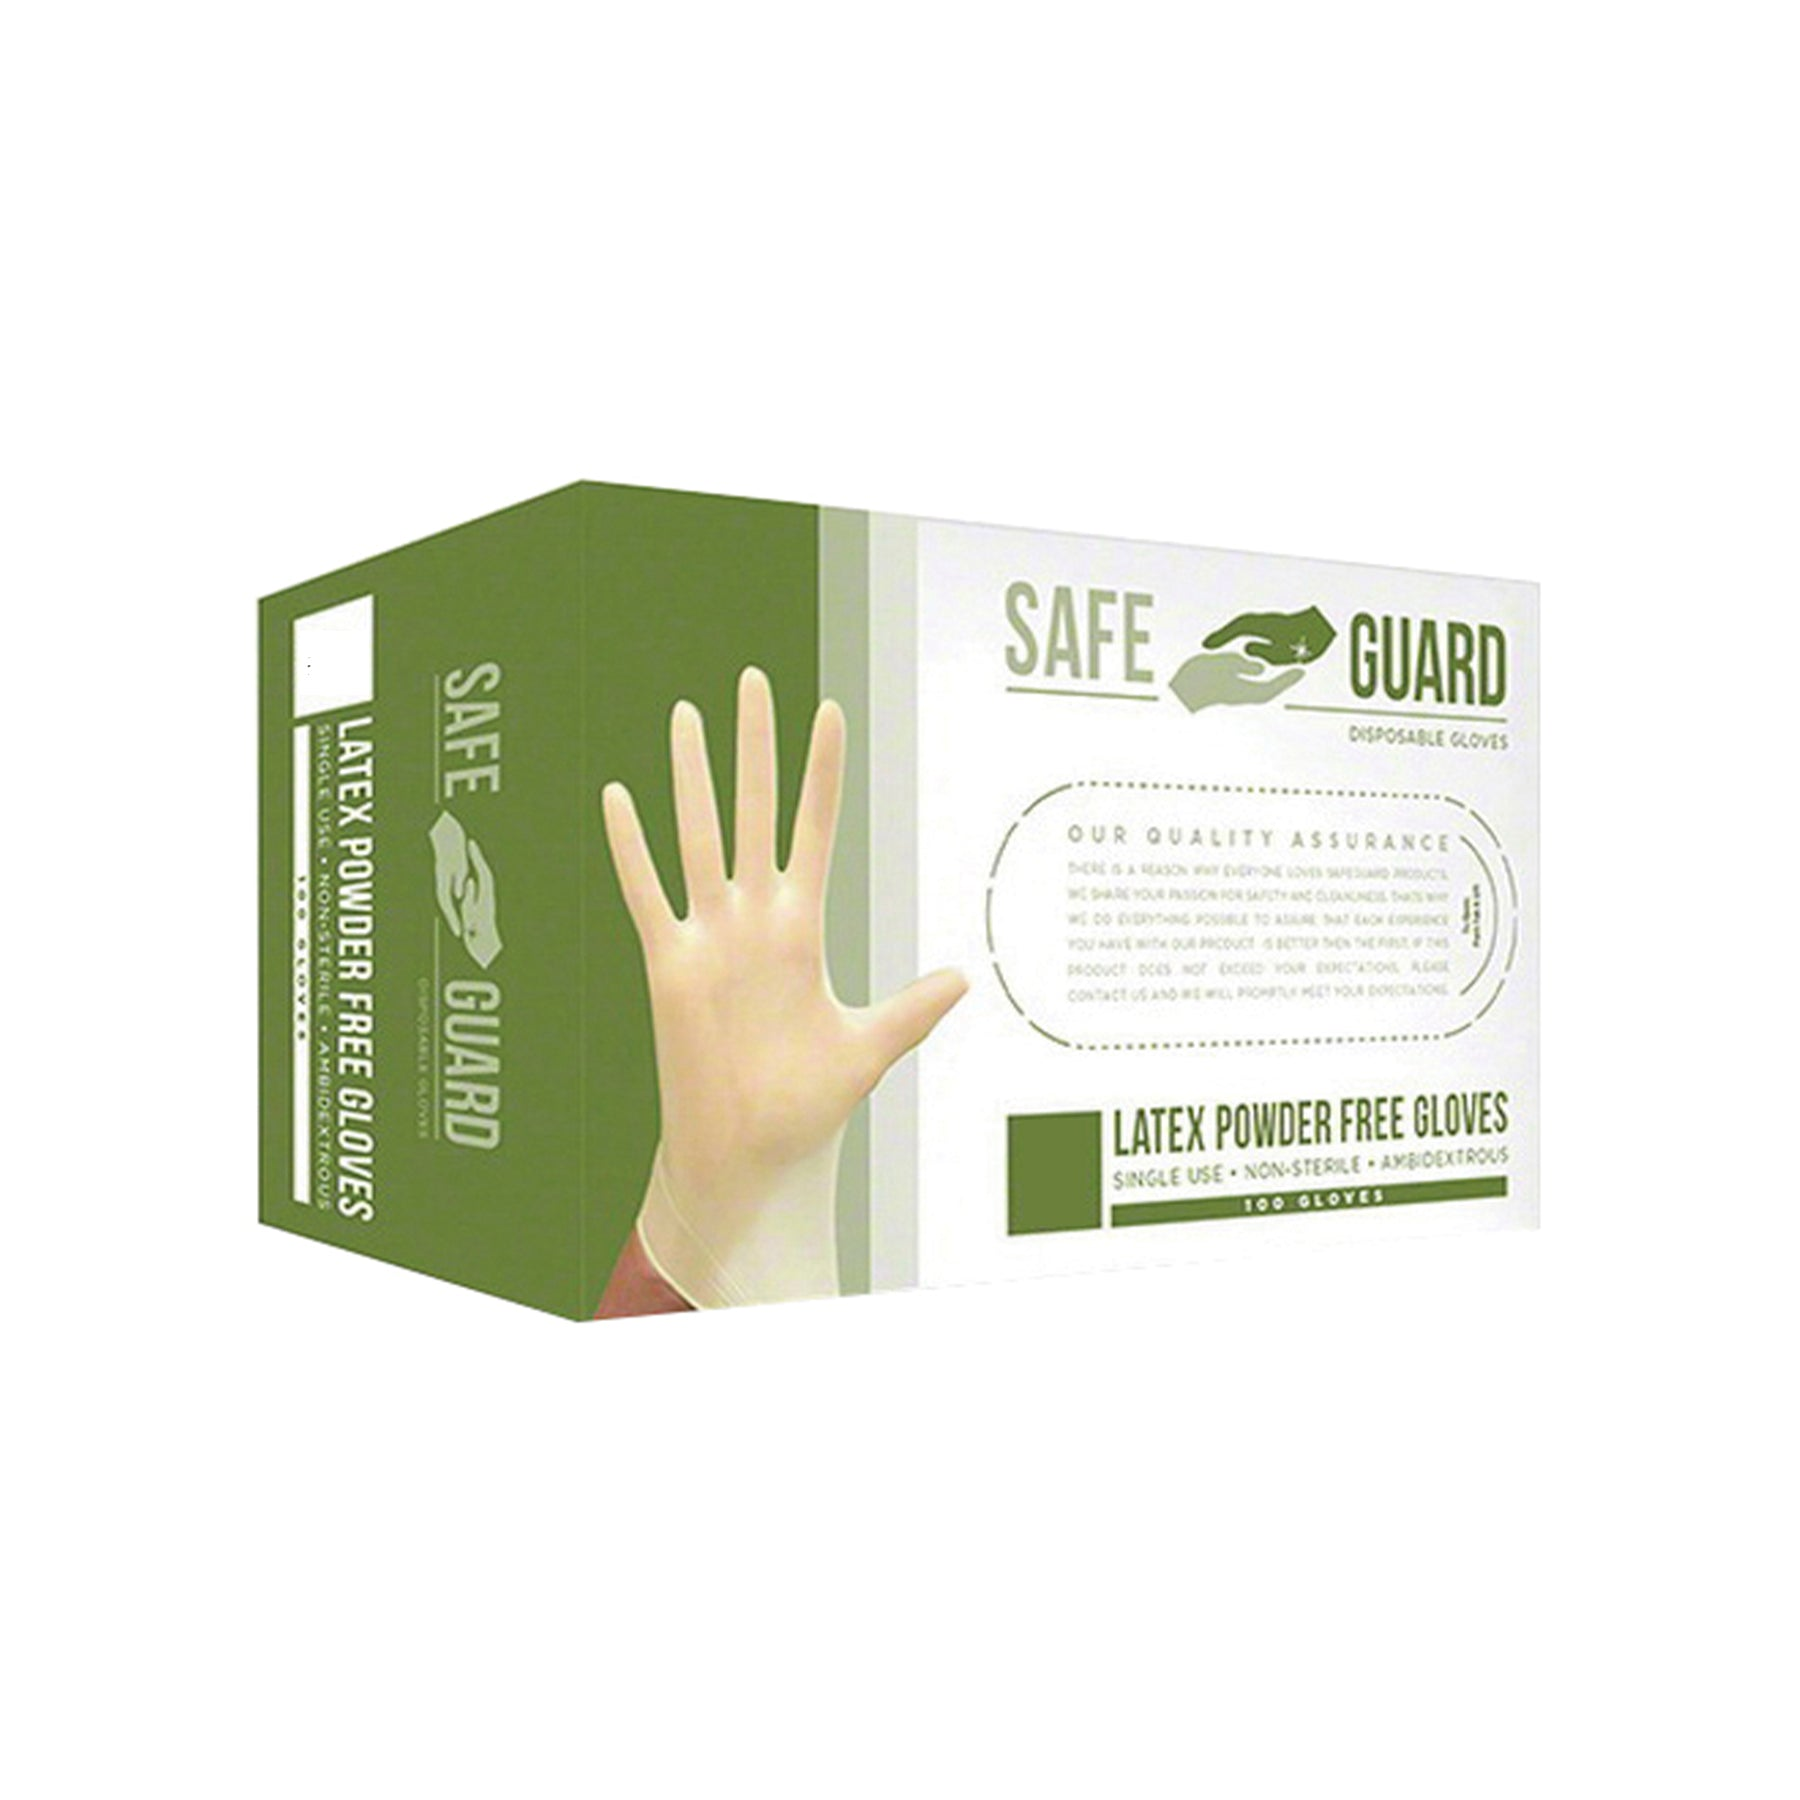 Powder Free Disposable Latex Gloves By SAFEGUARD